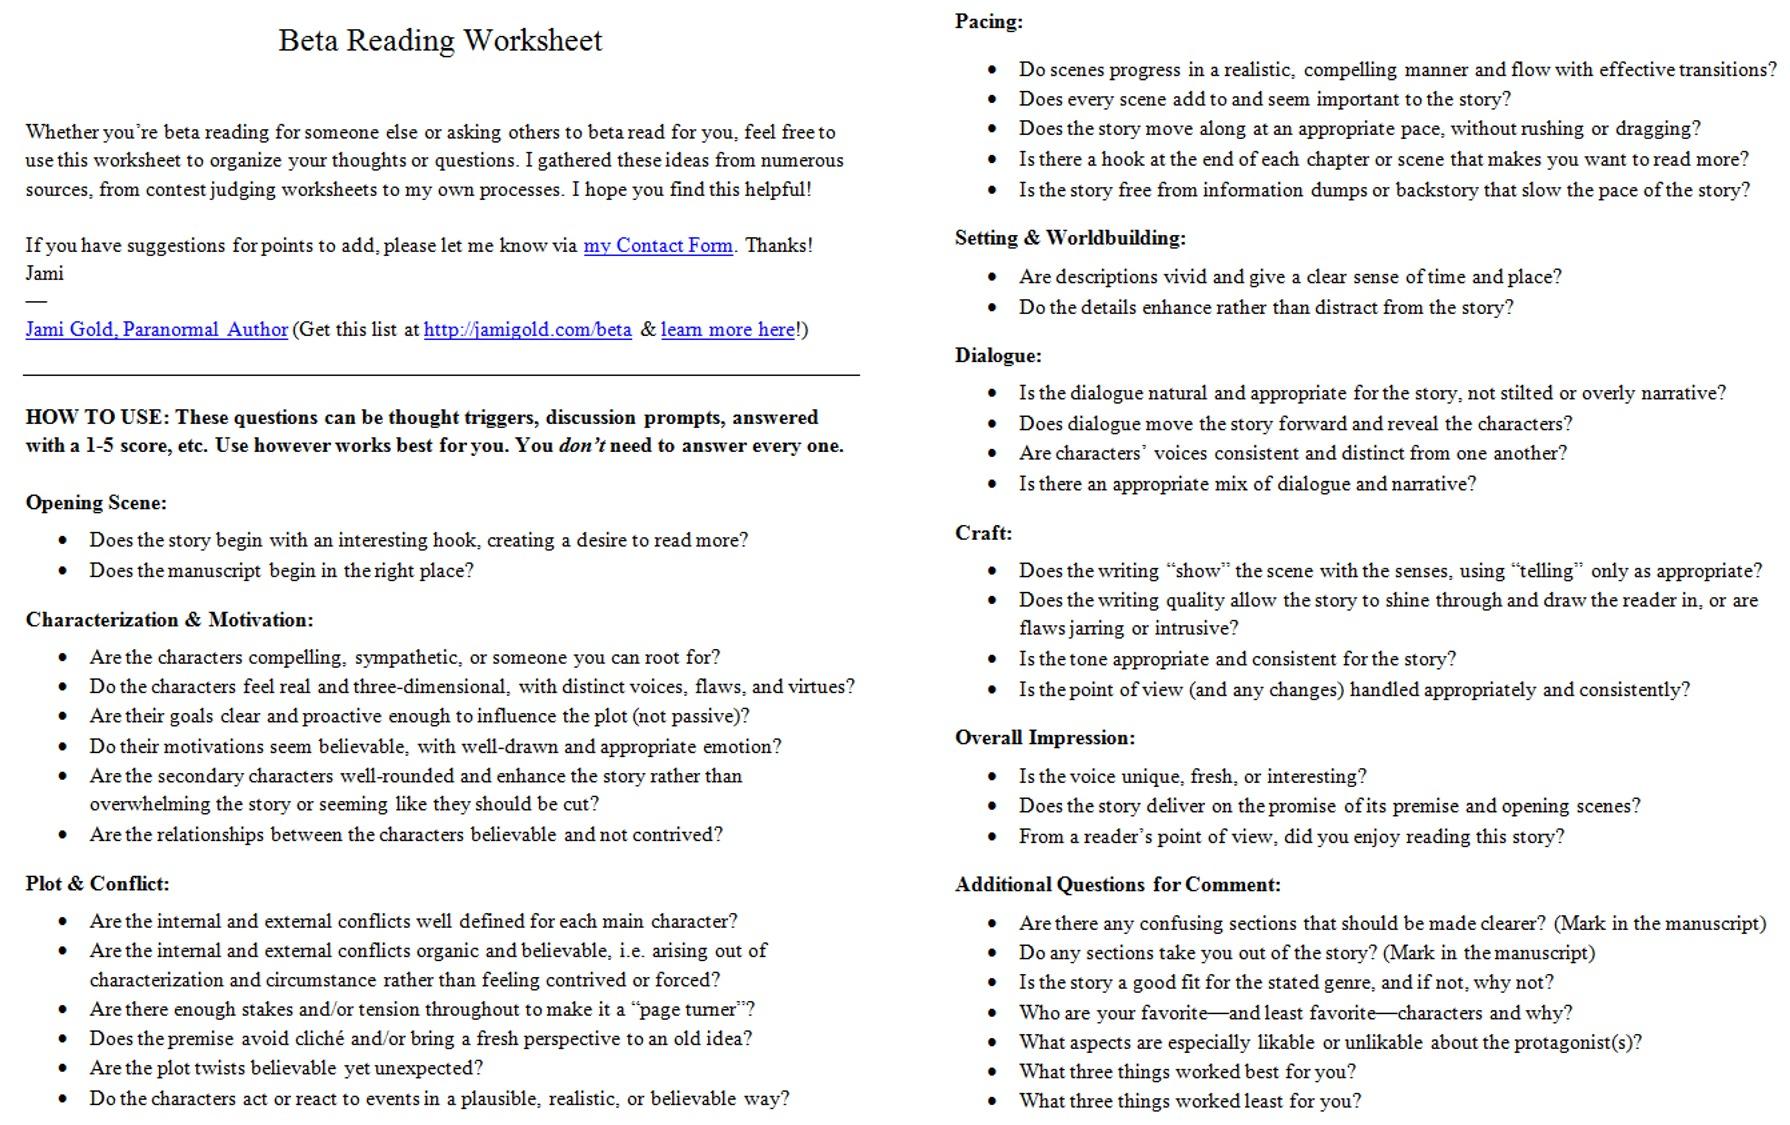 Aldiablosus  Splendid Worksheets For Writers  Jami Gold Paranormal Author With Engaging Screen Shot Of The Twopage Beta Reading Worksheet With Adorable Colouring Worksheets For Preschool Kids Also Tag Question Worksheet In Addition Logical Thinking Worksheets And Fractions Pdf Worksheets As Well As Free Music History Worksheets Additionally Apostrophe Use Worksheet From Jamigoldcom With Aldiablosus  Engaging Worksheets For Writers  Jami Gold Paranormal Author With Adorable Screen Shot Of The Twopage Beta Reading Worksheet And Splendid Colouring Worksheets For Preschool Kids Also Tag Question Worksheet In Addition Logical Thinking Worksheets From Jamigoldcom